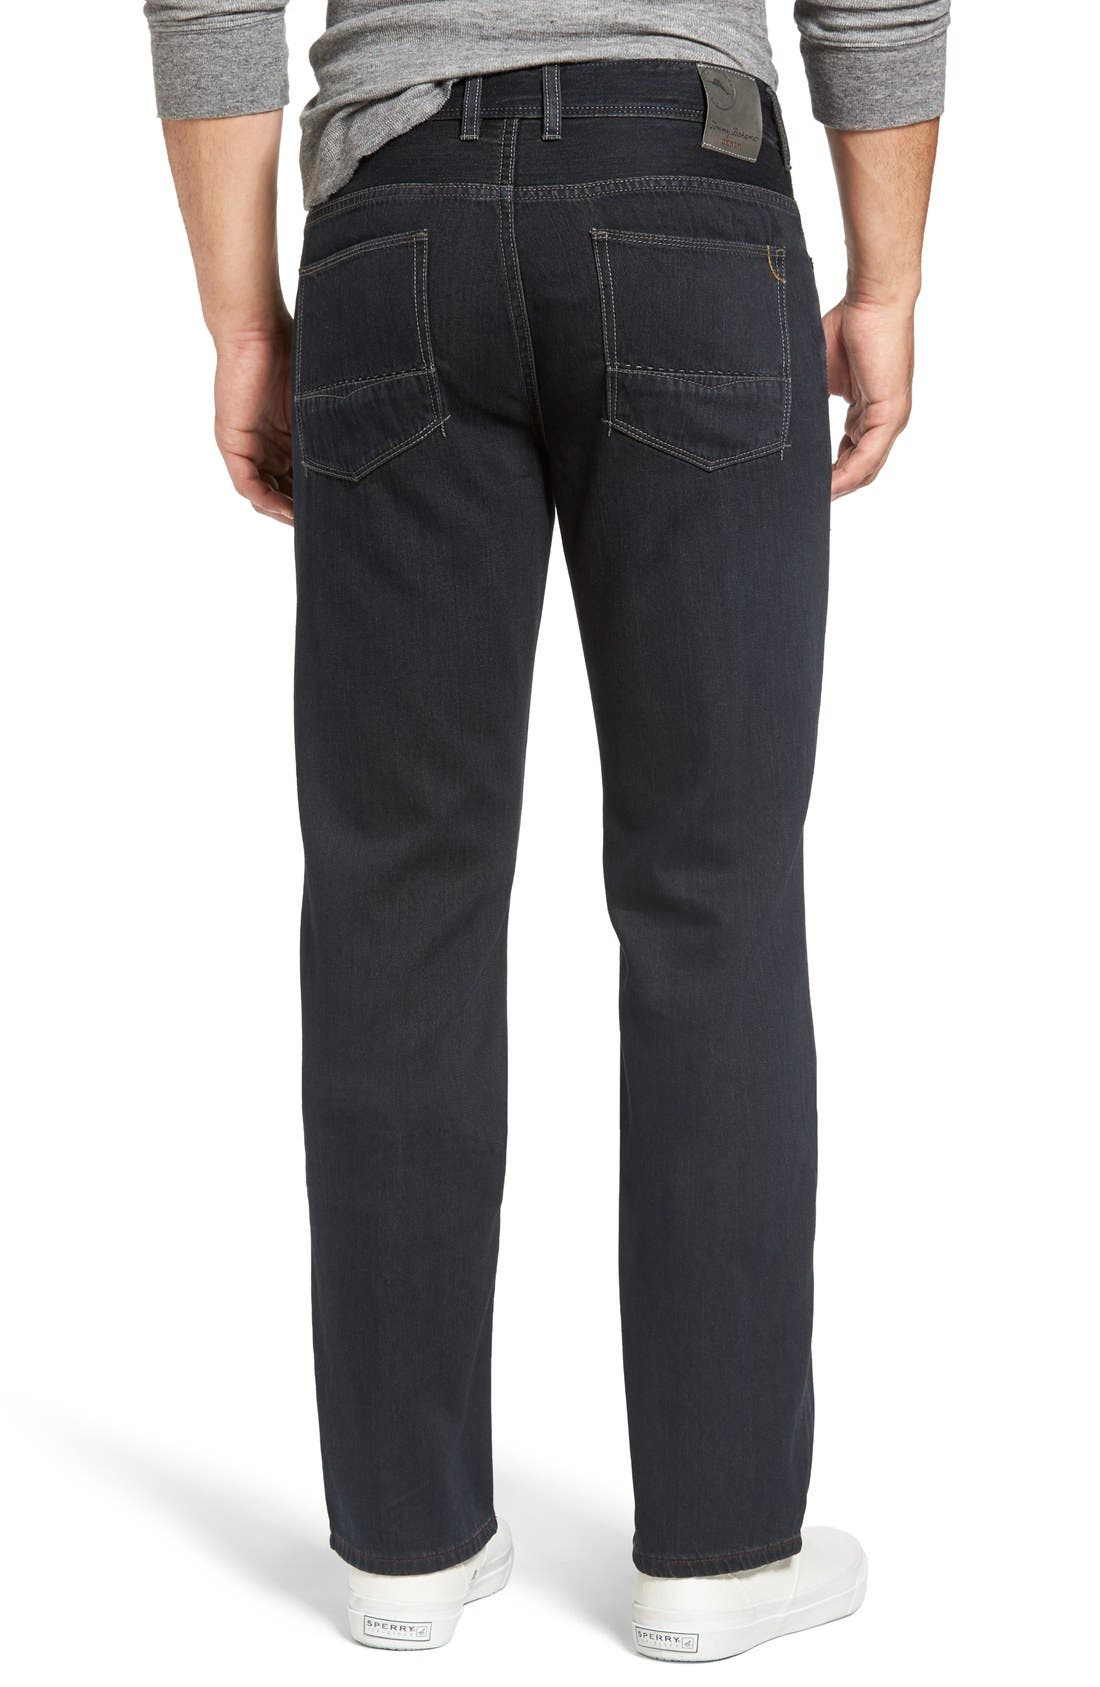 Cayman Relaxed Fit Straight Leg Jeans,                             Alternate thumbnail 5, color,                             BLACK OVERDYE